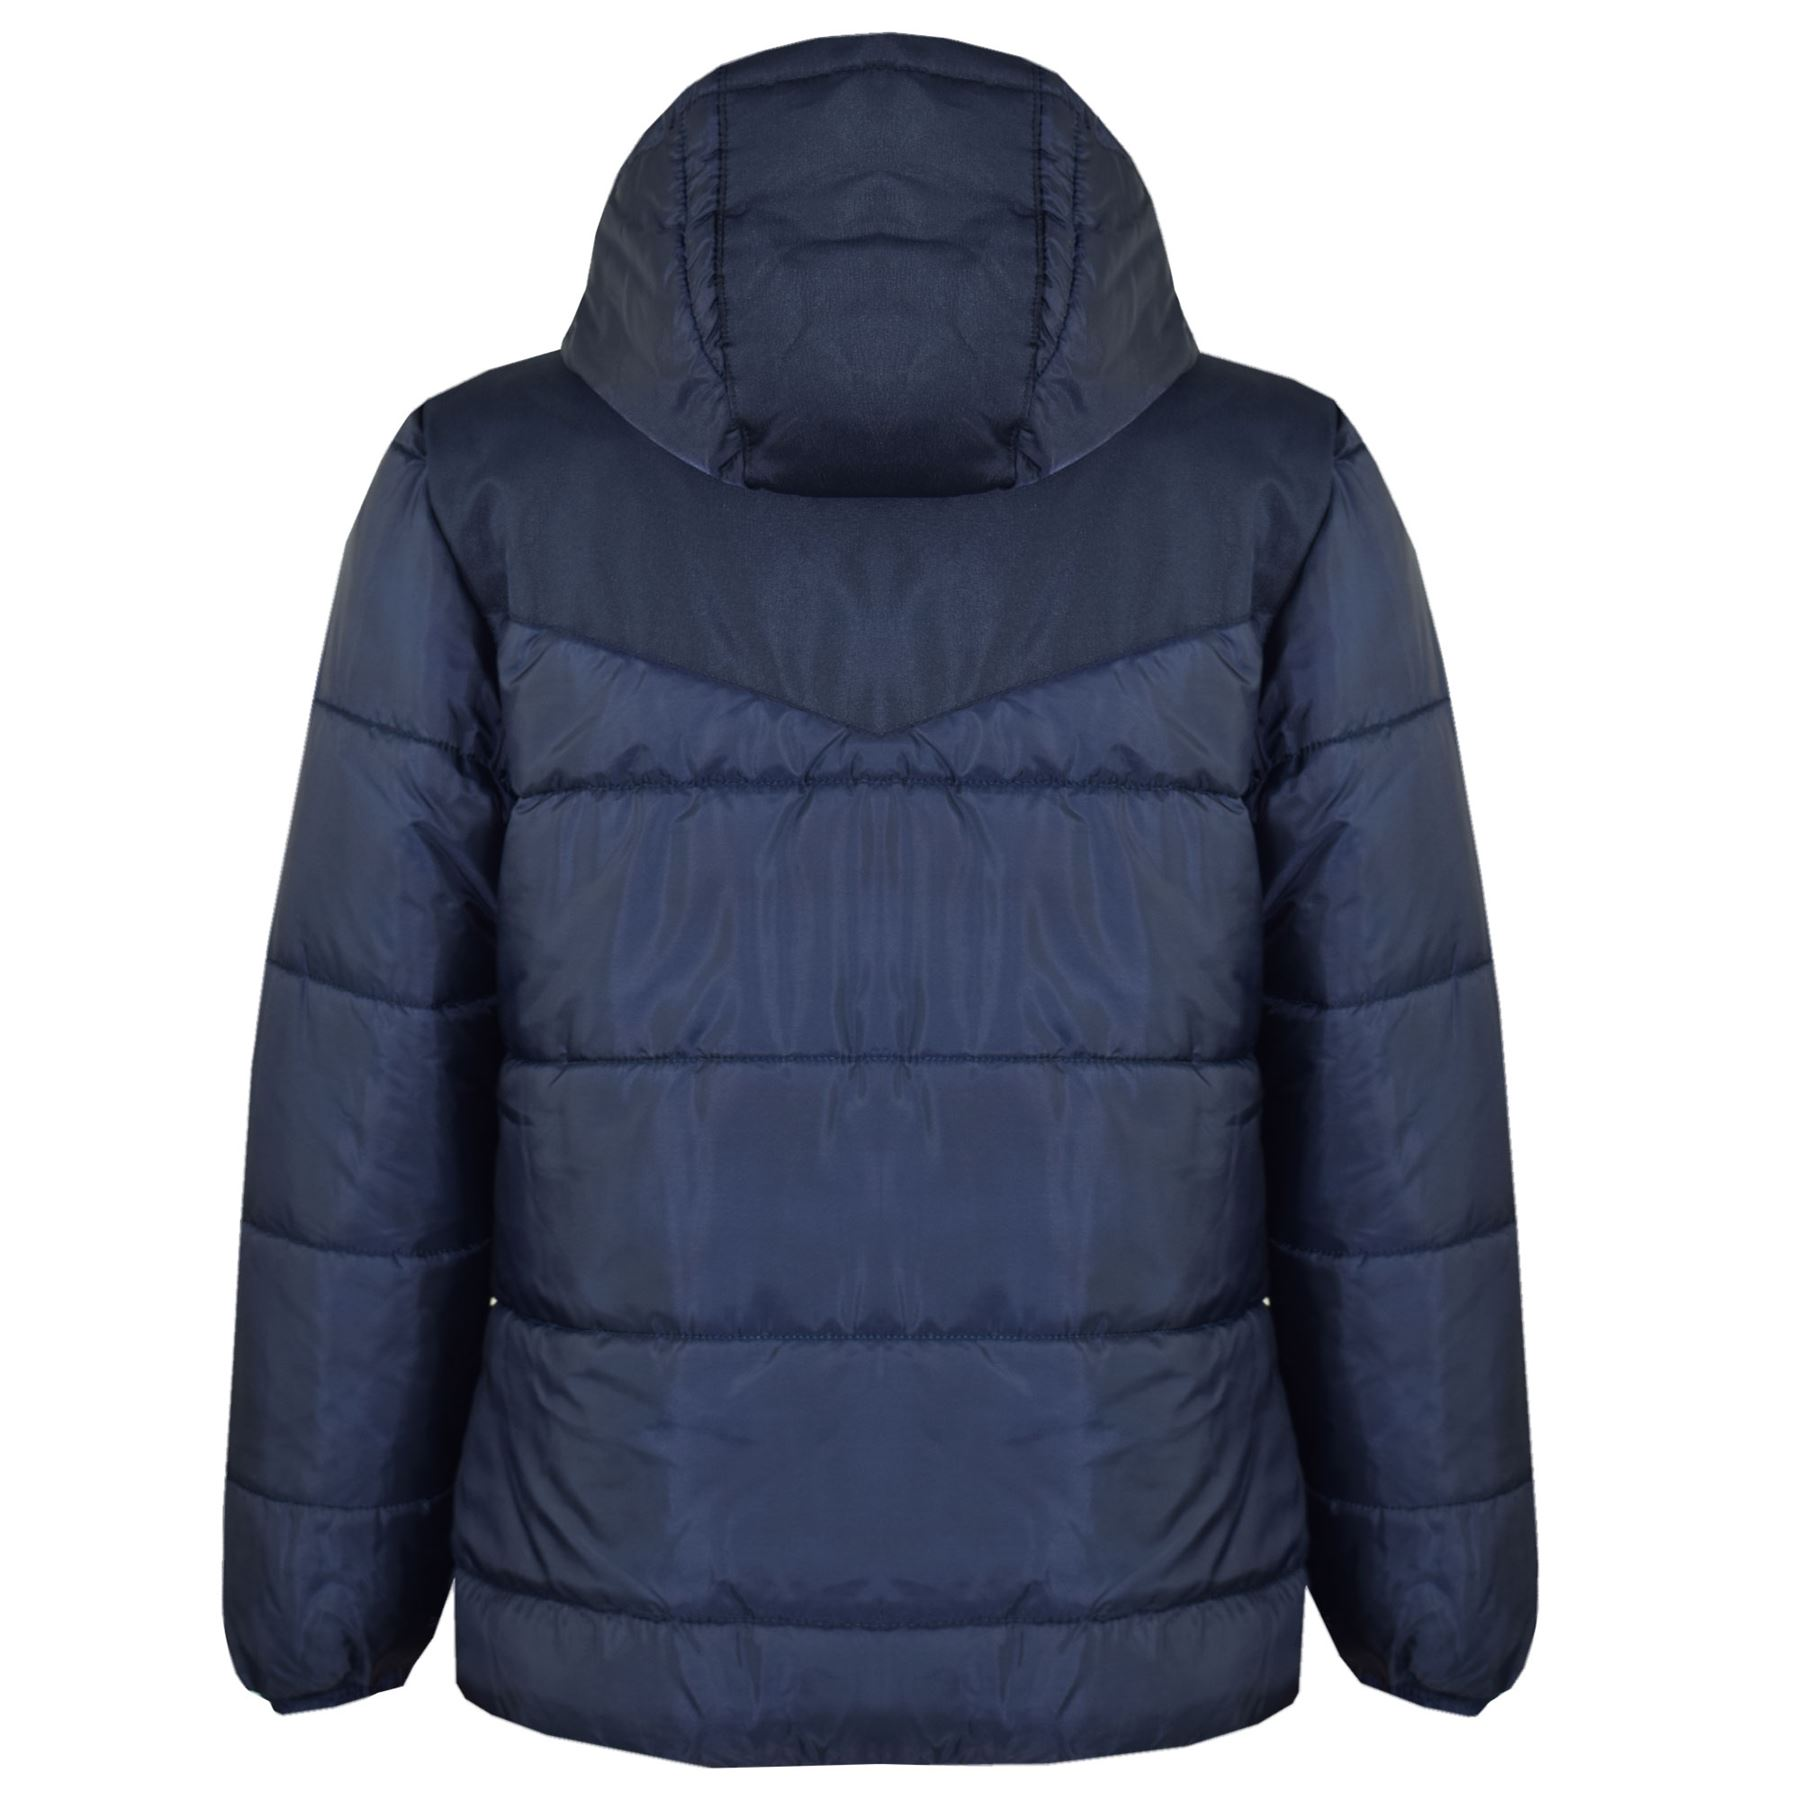 d747d1e5e Details about Kids Jacket Girls Boys Padded Puffer Bubble Zipped Hooded  Warm Thick Coats 3-13Y